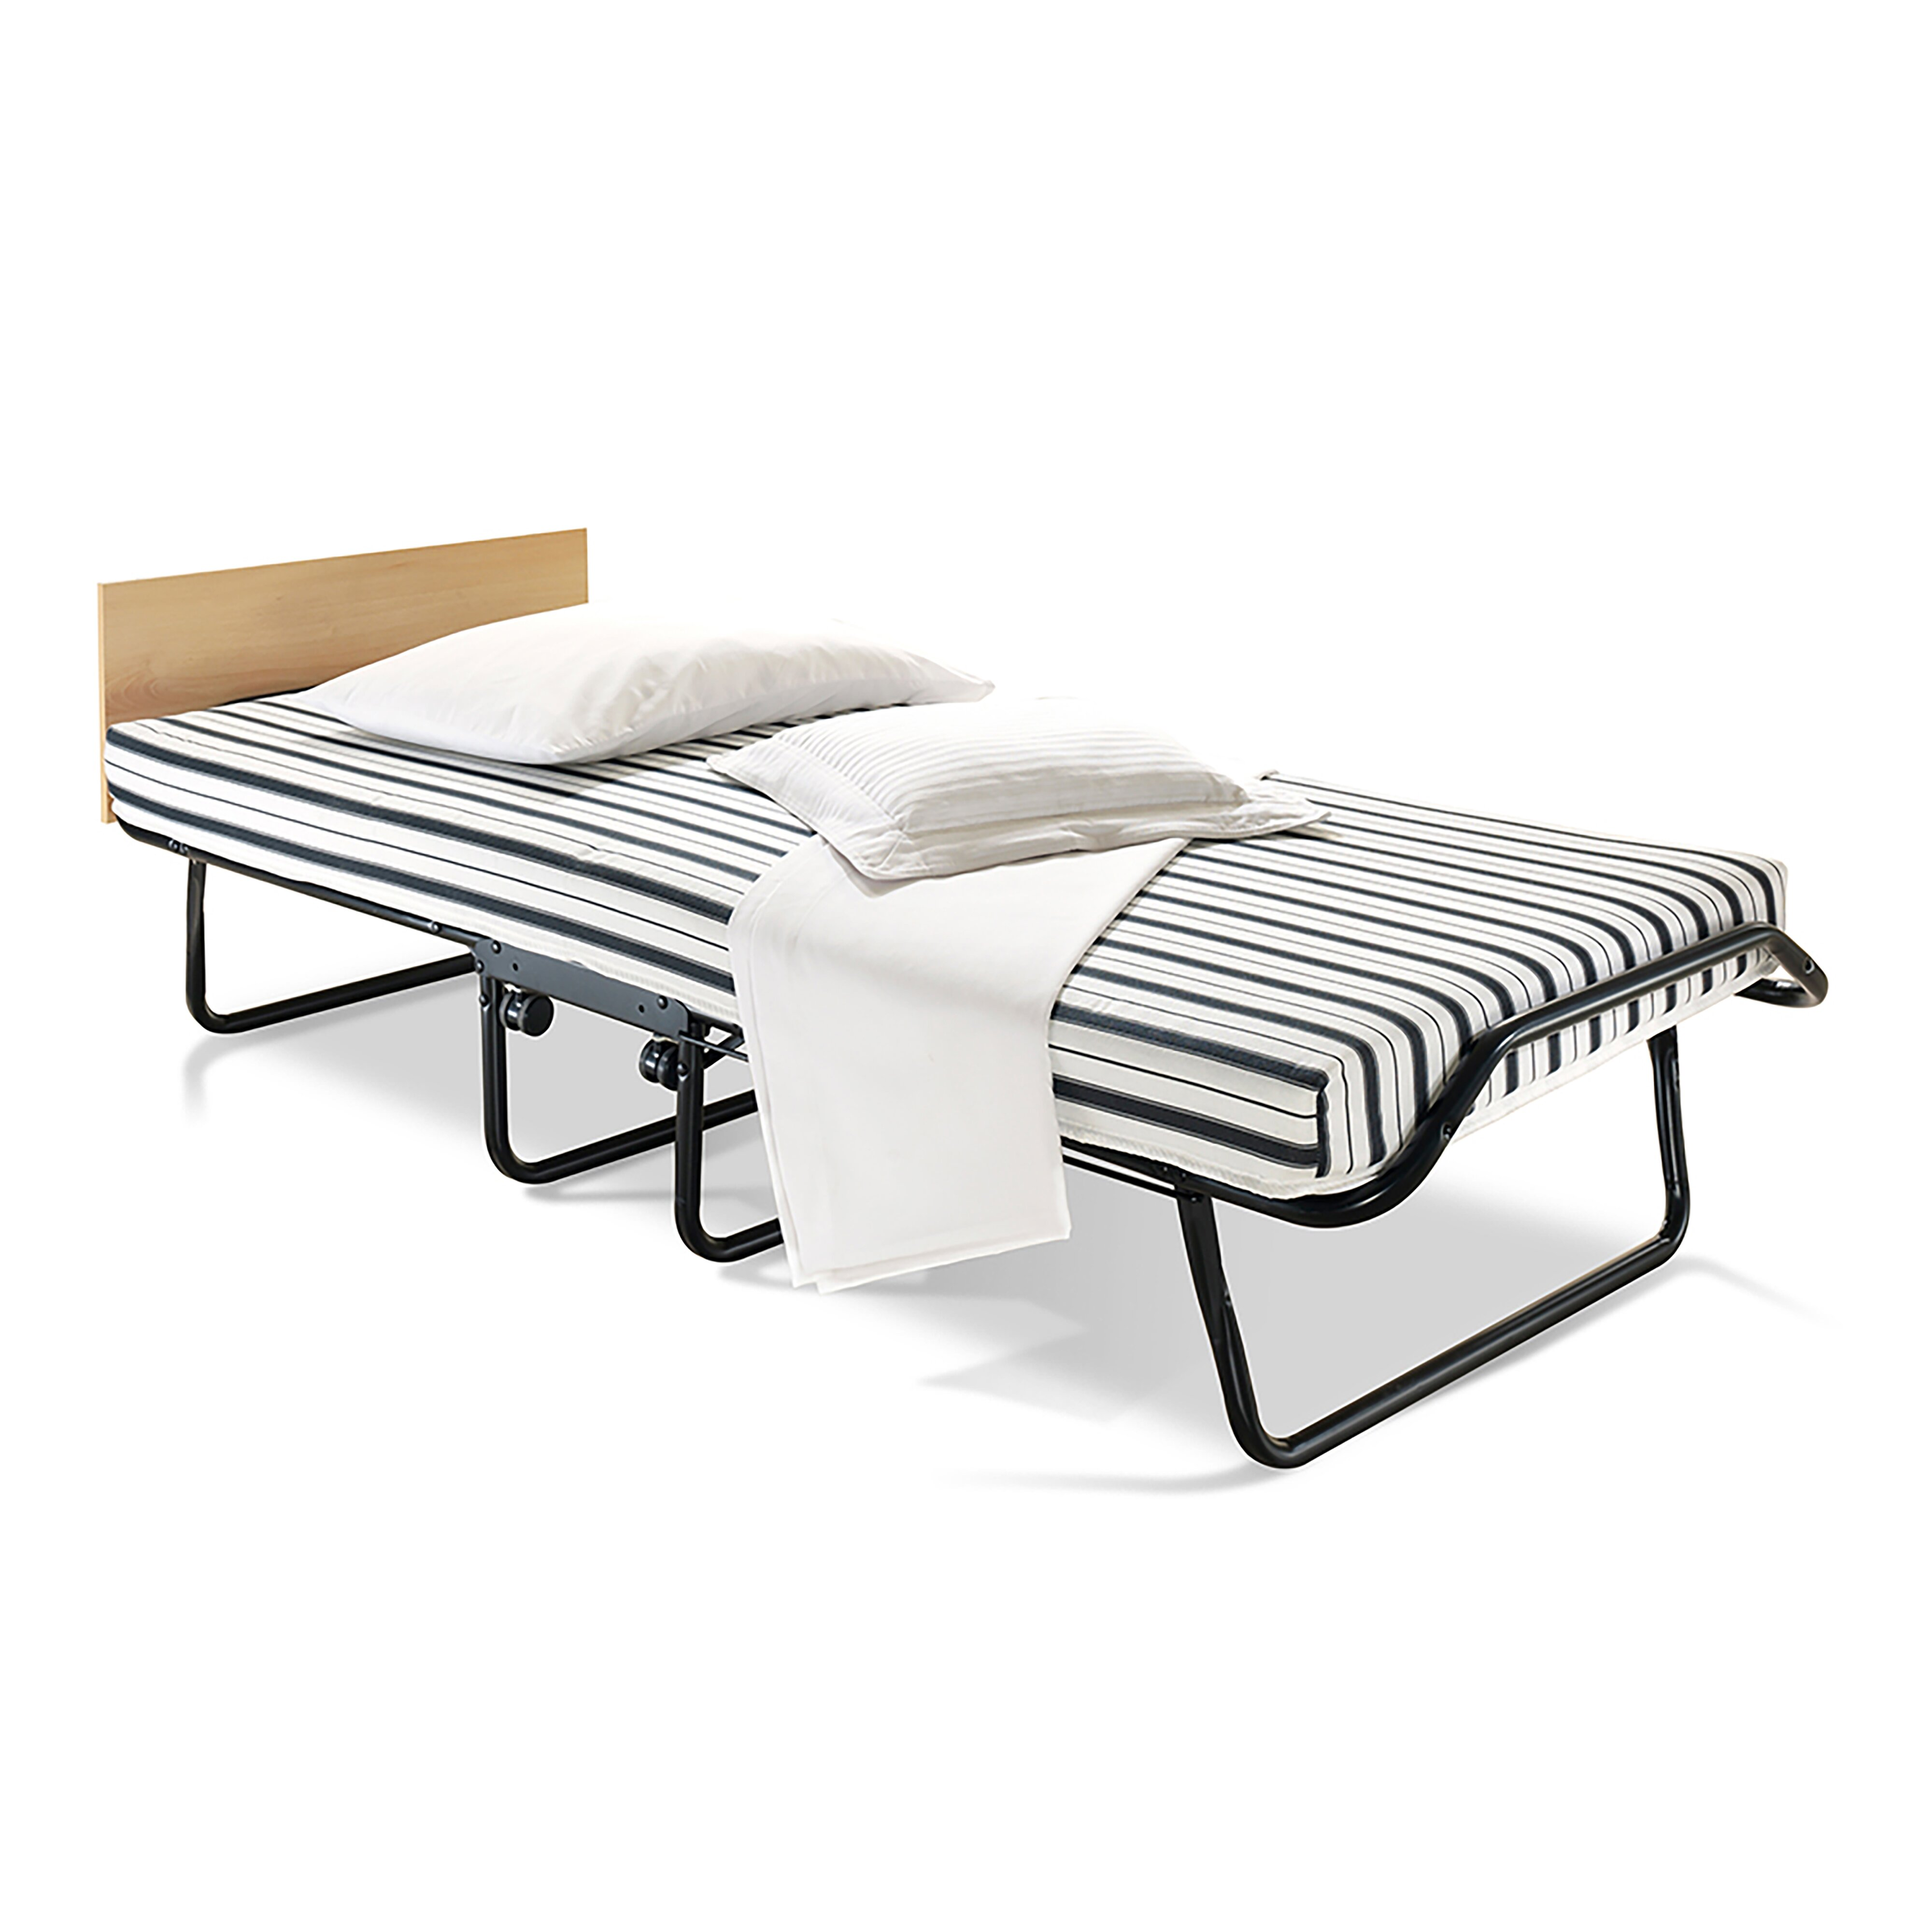 Folding Beds Reviews : Jay be jubilee folding bed reviews wayfair uk